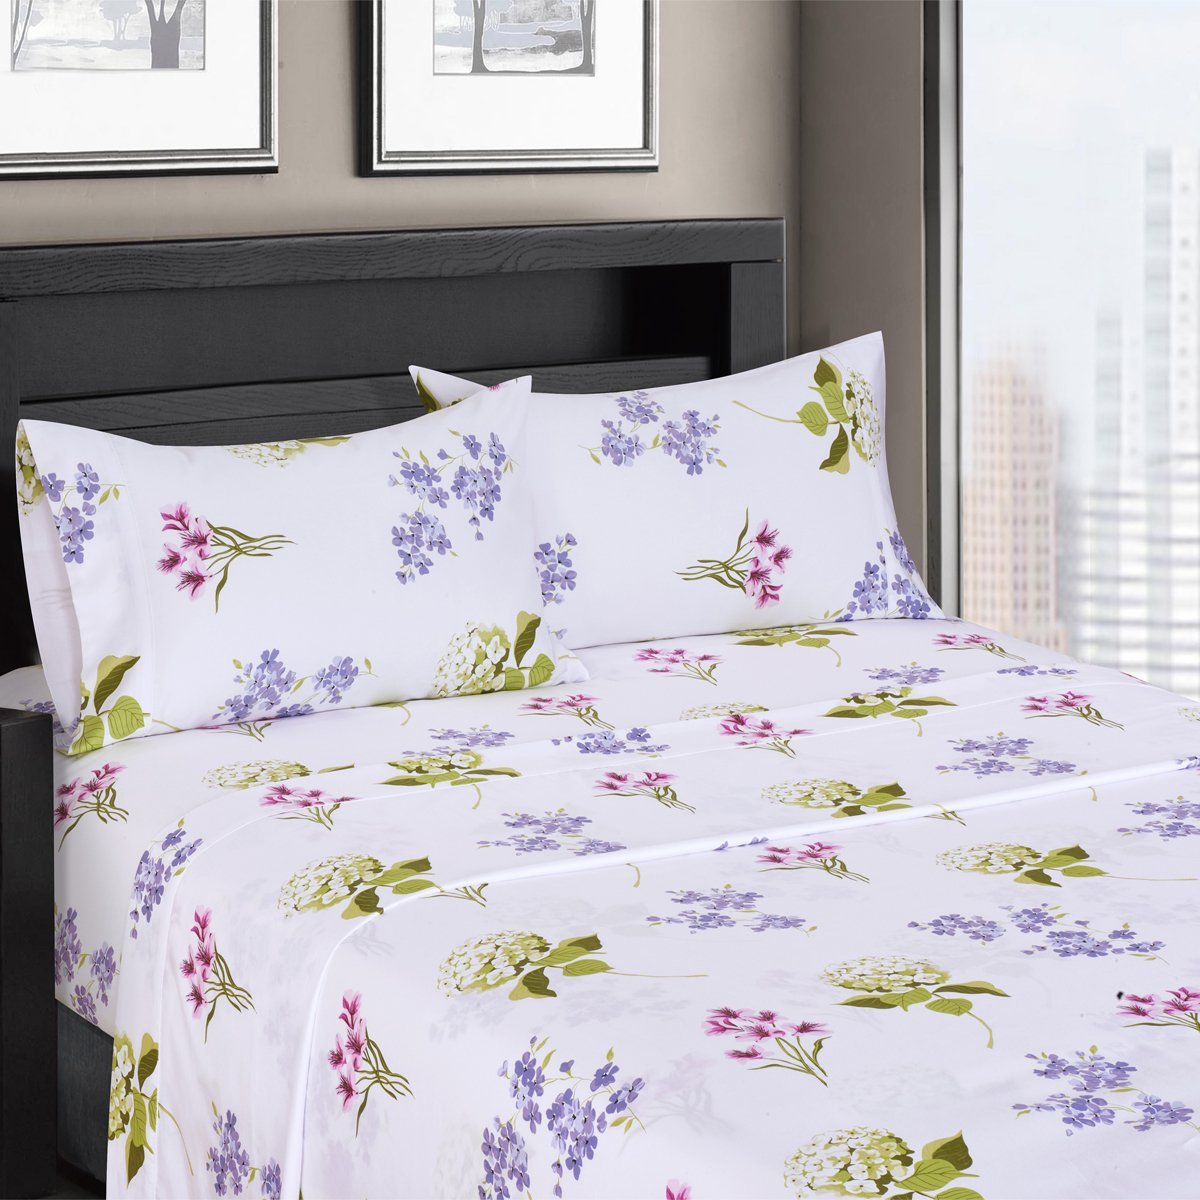 Blossom Floral Sateen Cotton Sheets, 4pc California-King Bed Sheet Set 100-Percent Cotton, Superior Sateen Weave, Silky Soft, Deep Pocket, Modern Reactive Print, 300 Thread Count